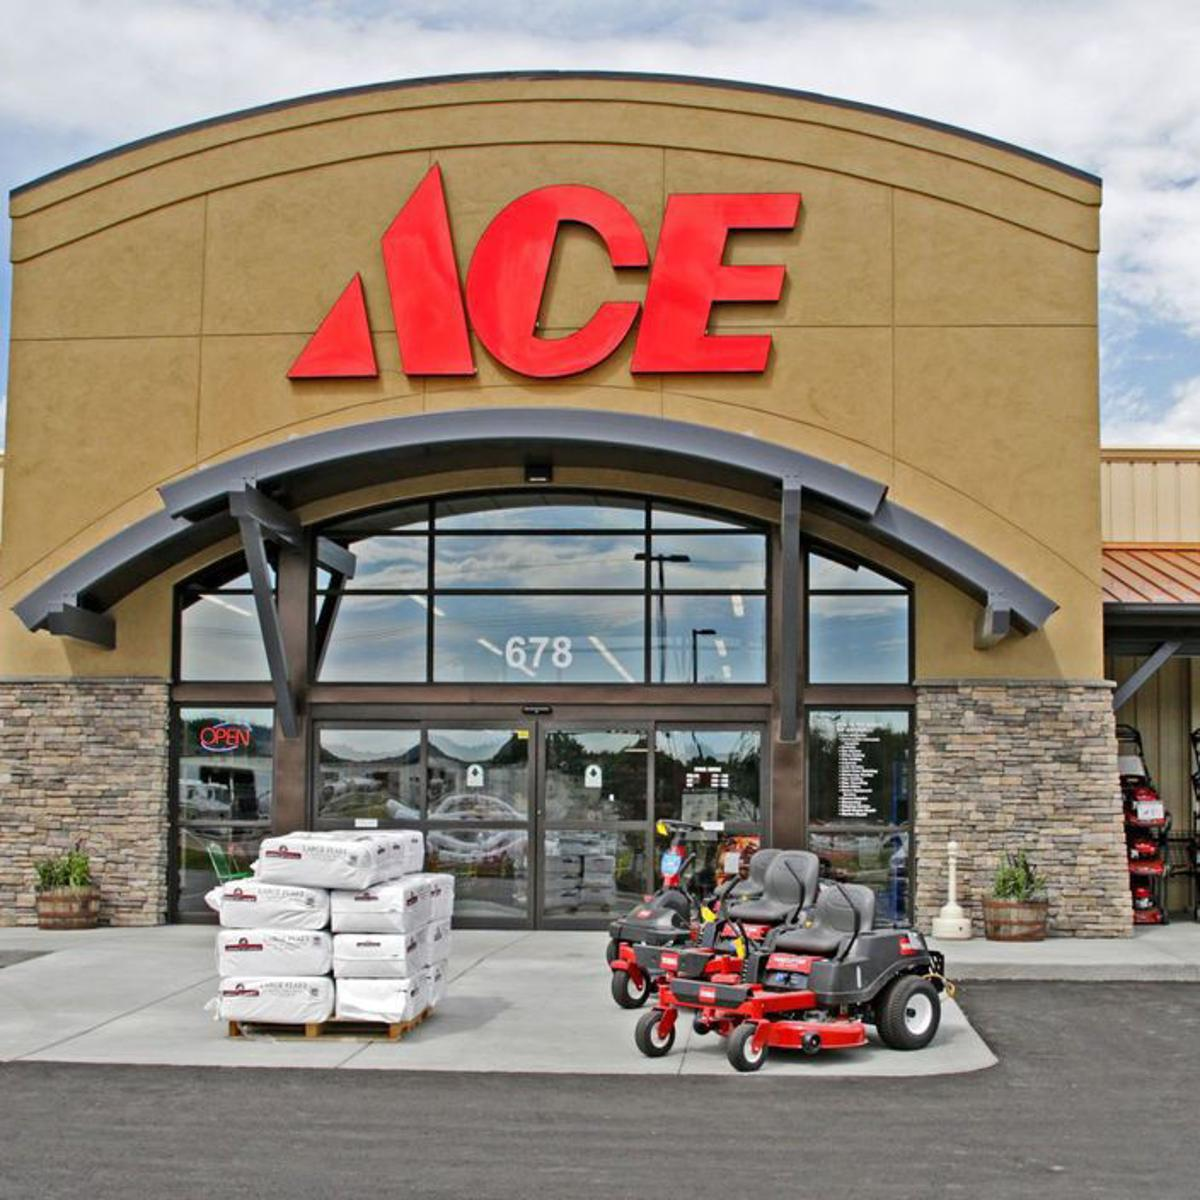 County could help new $5 9 million Ace Hardware store in Butte